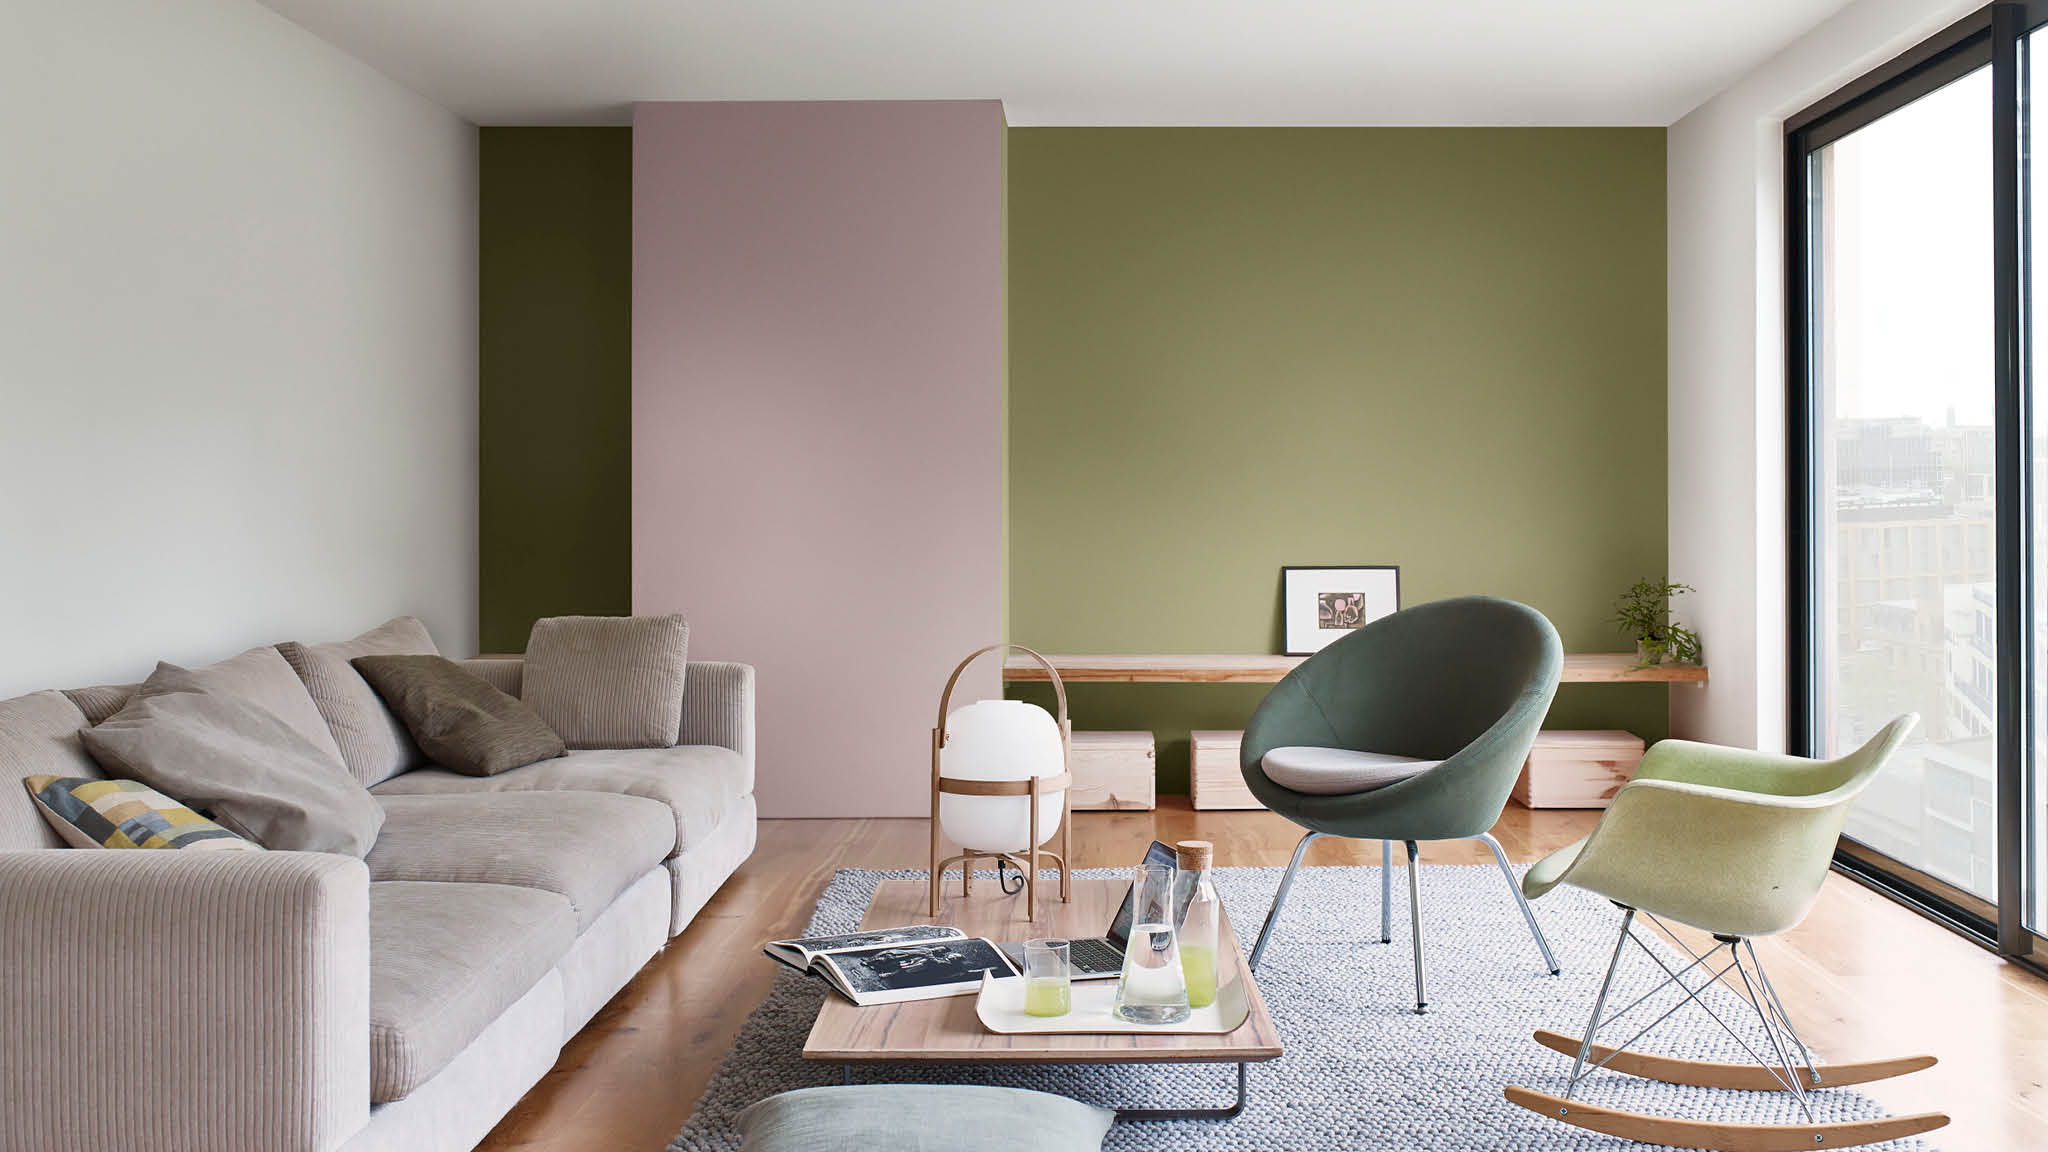 A living room painted in natural pinks and greens